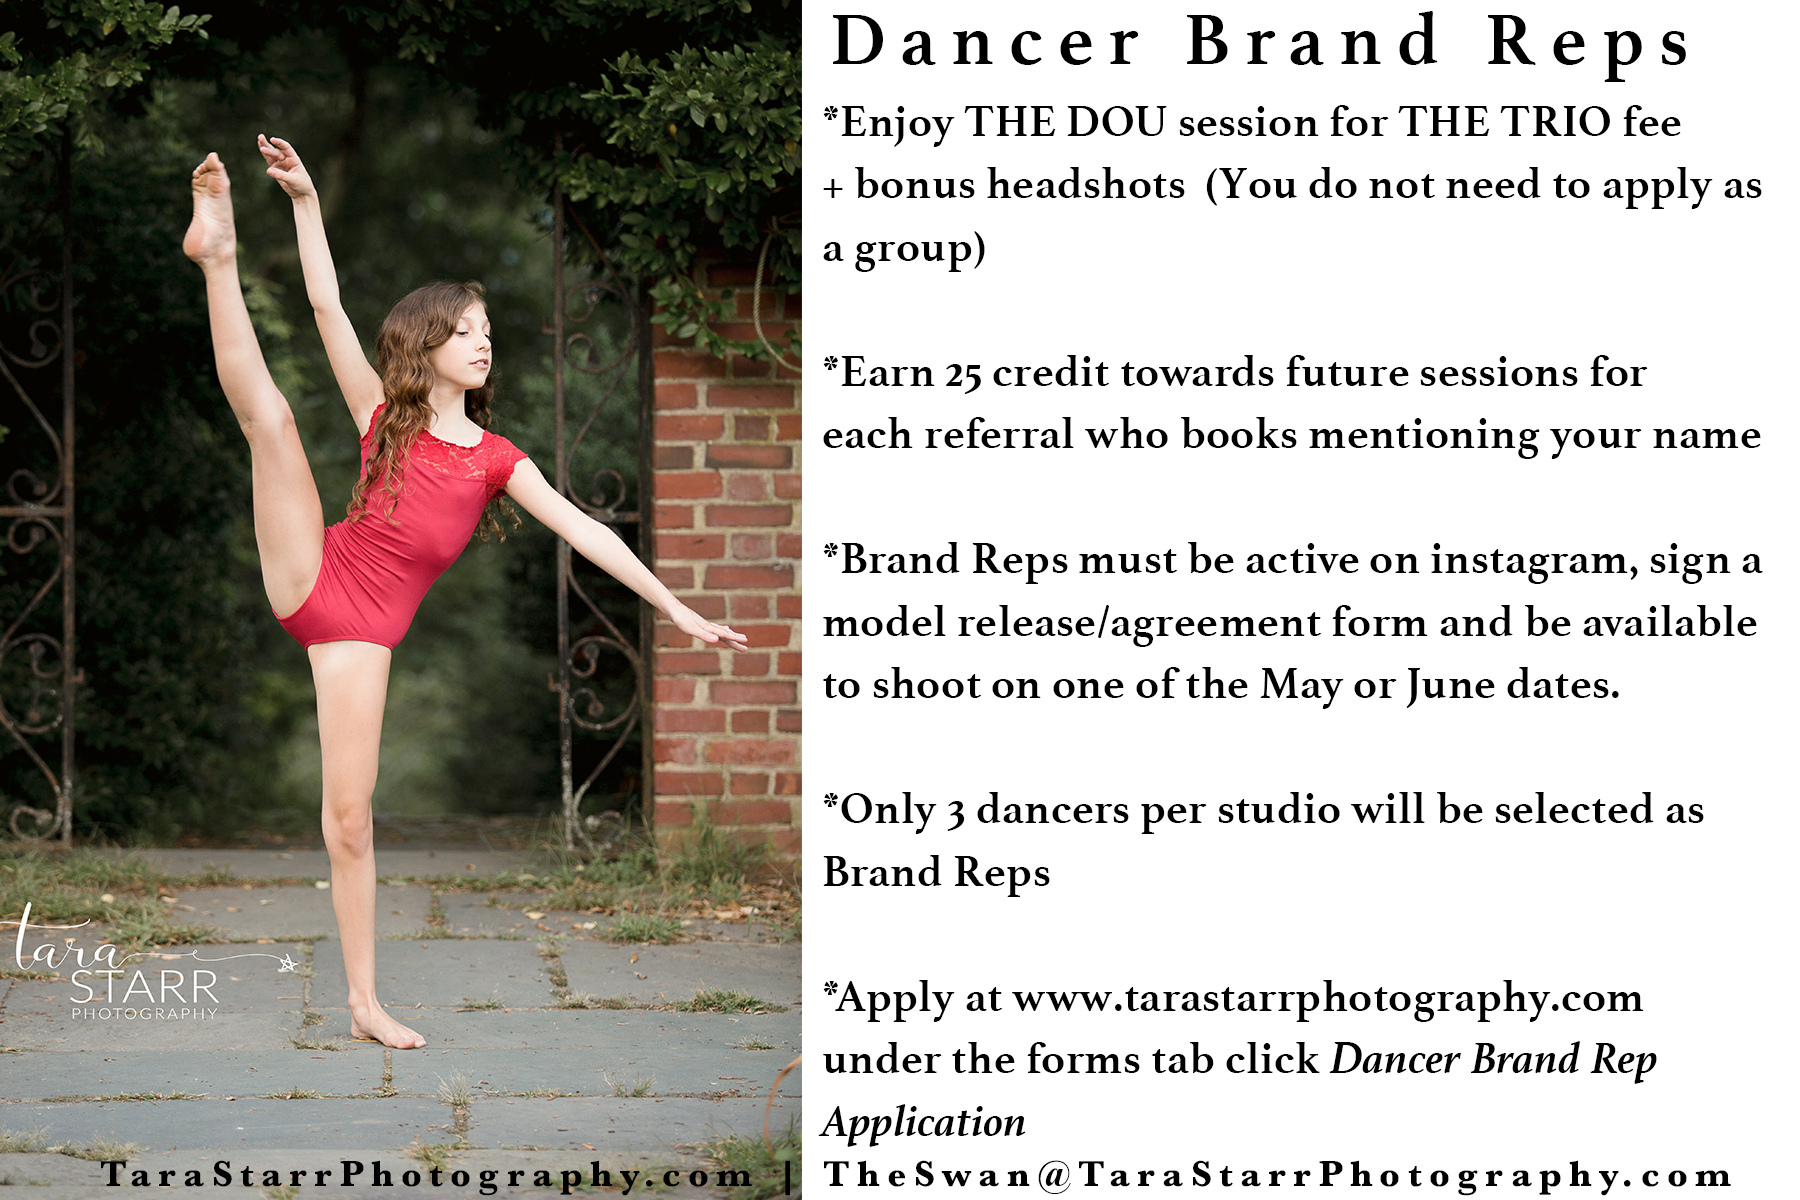 Perks of a Dancer Brand Rep - Session Incentive: A 400 session for 250 + credits towards future sessions for referrals.Once accepted, session fee due at time of booking